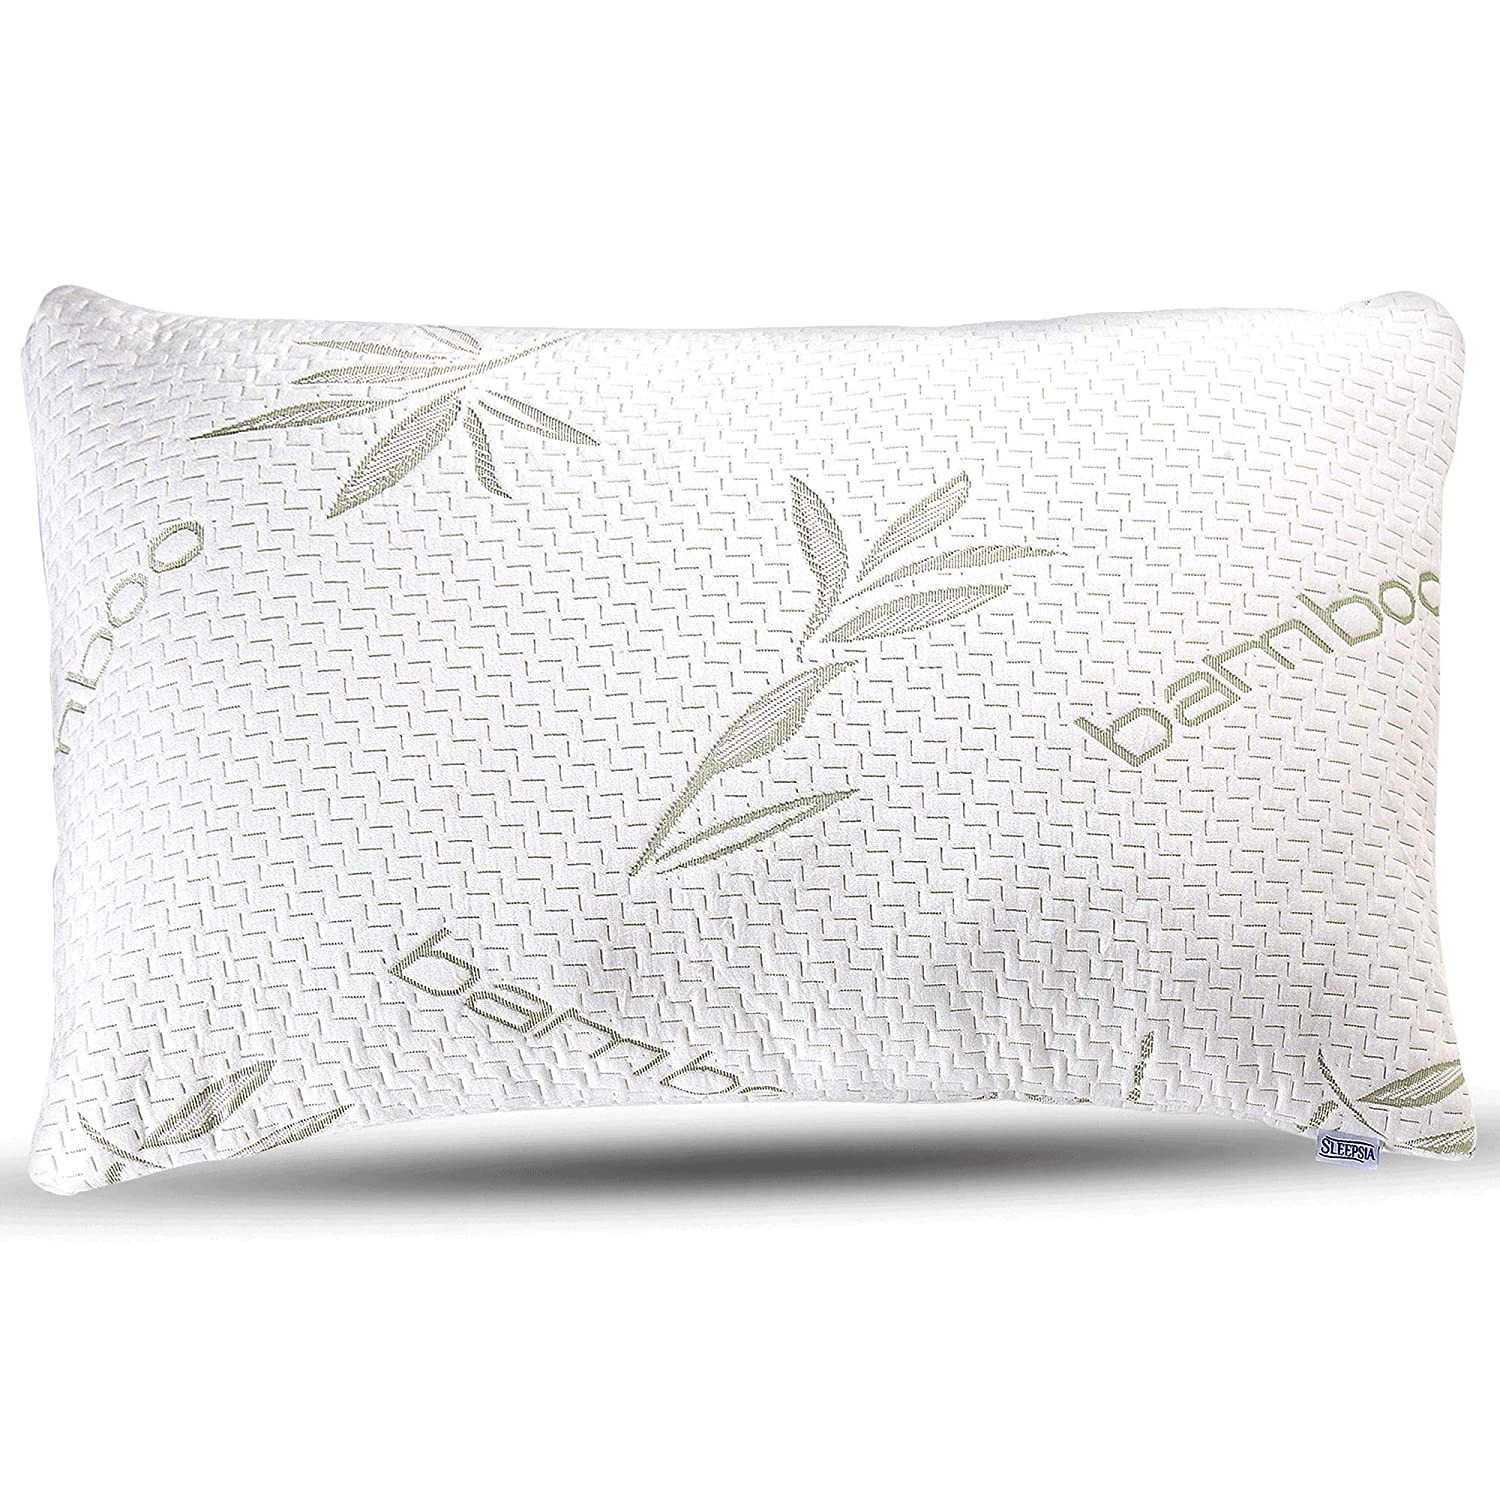 Sleepsia Bamboo Pillow - Premium Pillows for Sleeping - Memory Foam Pillow with Washable Pillow Case - Adjustable (Queen)